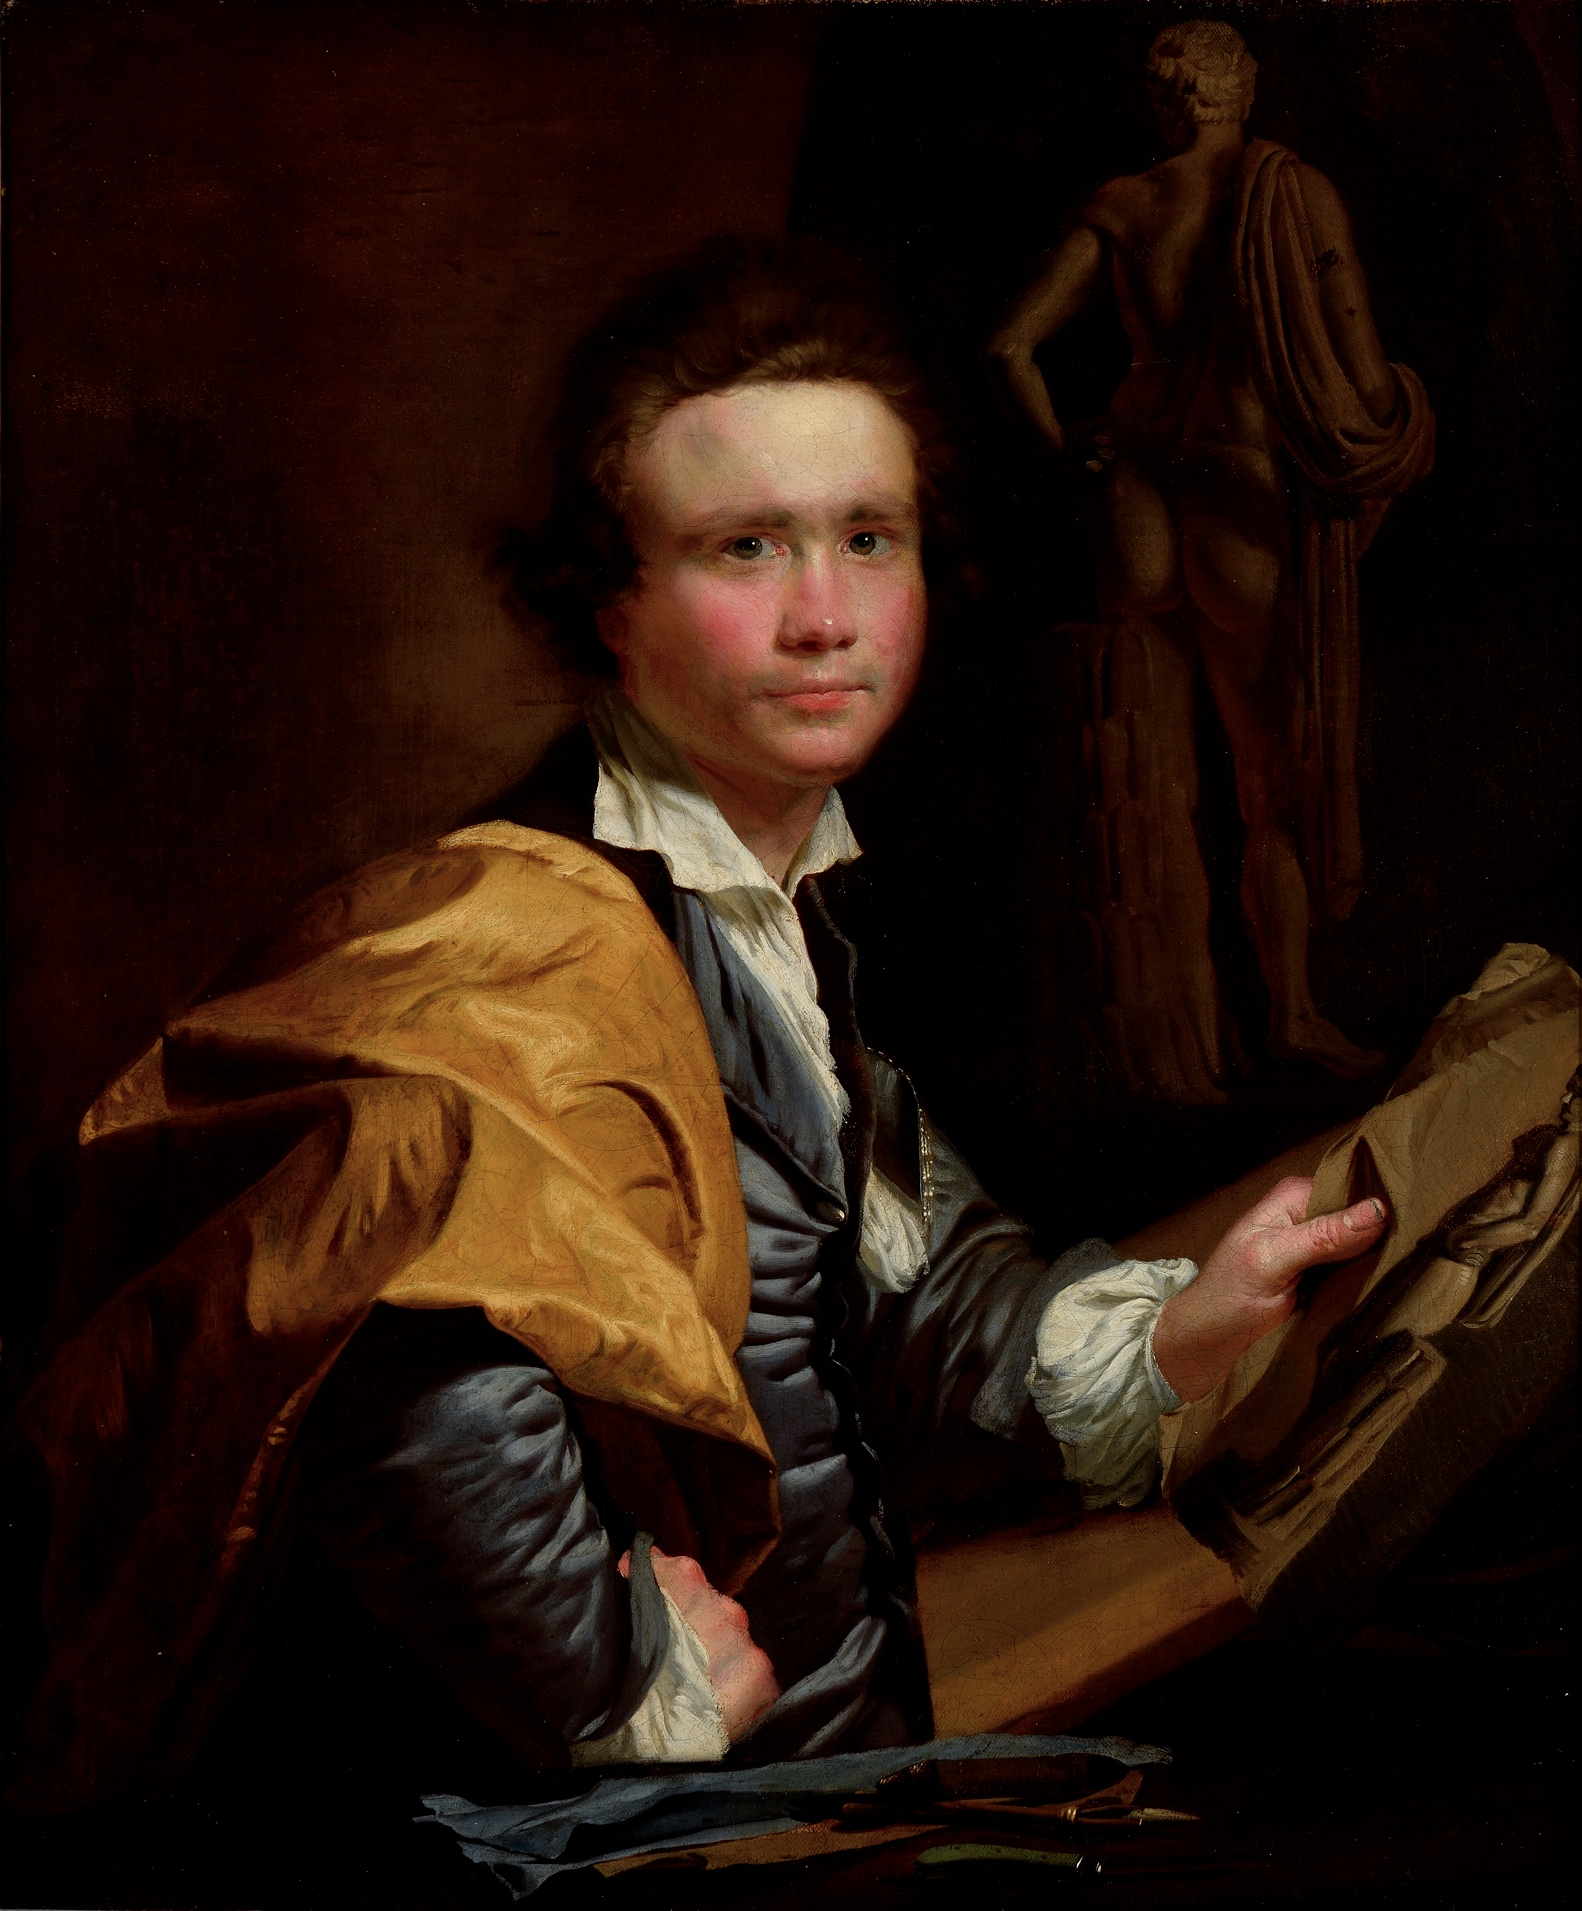 Joseph-Siffred Duplessis, attributed, French, Portrait of a Young Sculptor, 18th century. Oil on canvas, 291/8 x 241/2 inches (74 x 62.2 cm). Bequest of Mary D.B.T. Semans in memory of her mother, Mary Duke Biddle; 2013.3.1. Photo by Peter Paul Geoffrion.